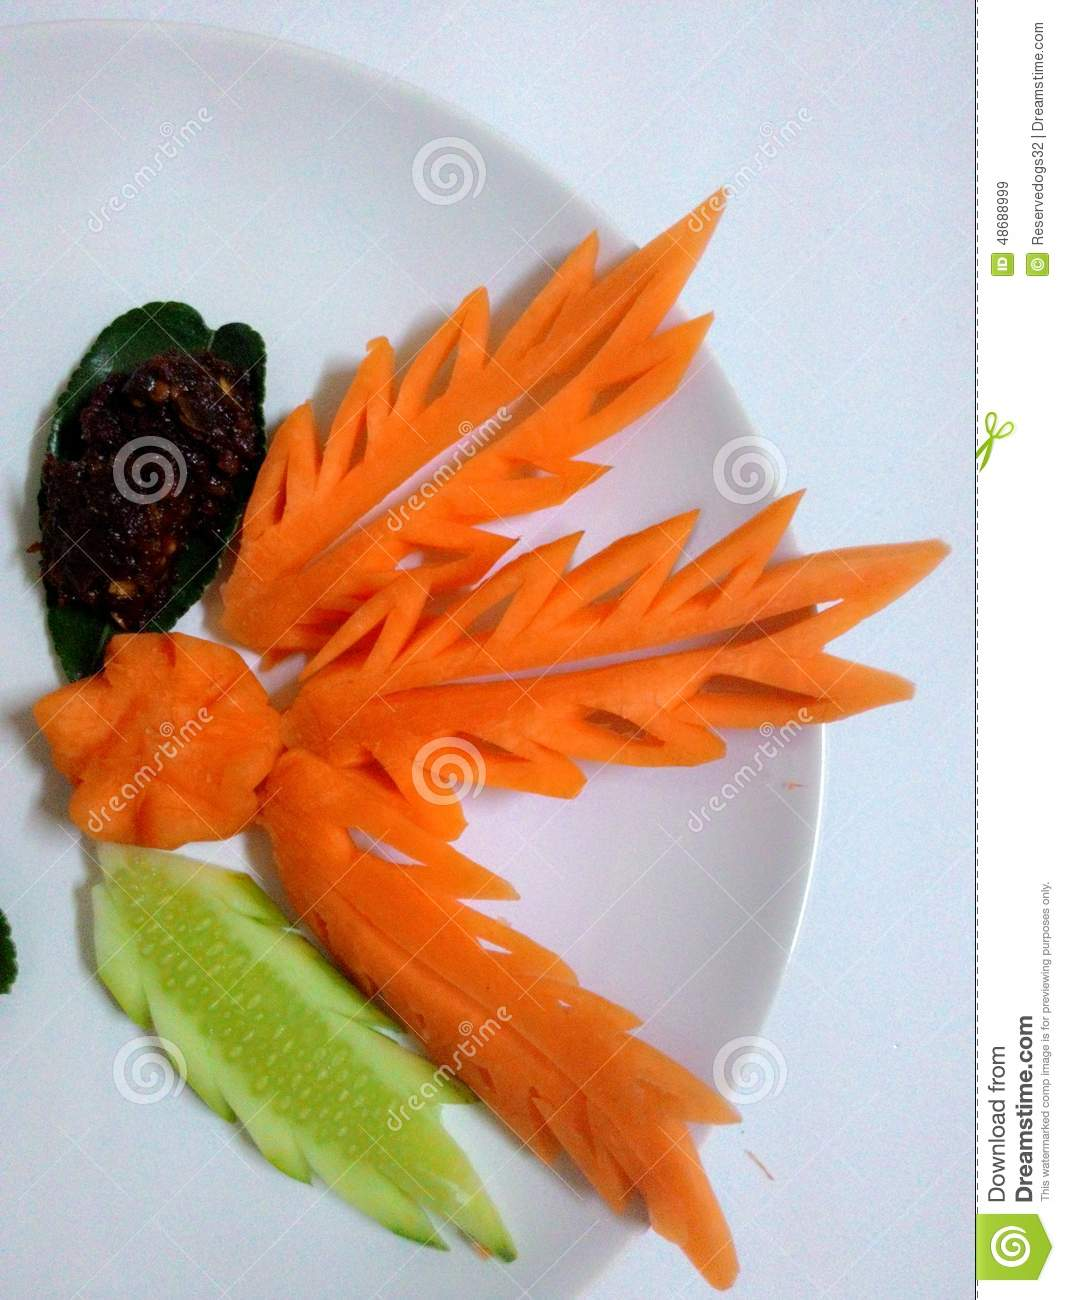 Carving carrot fruit vegetable art carve stock image